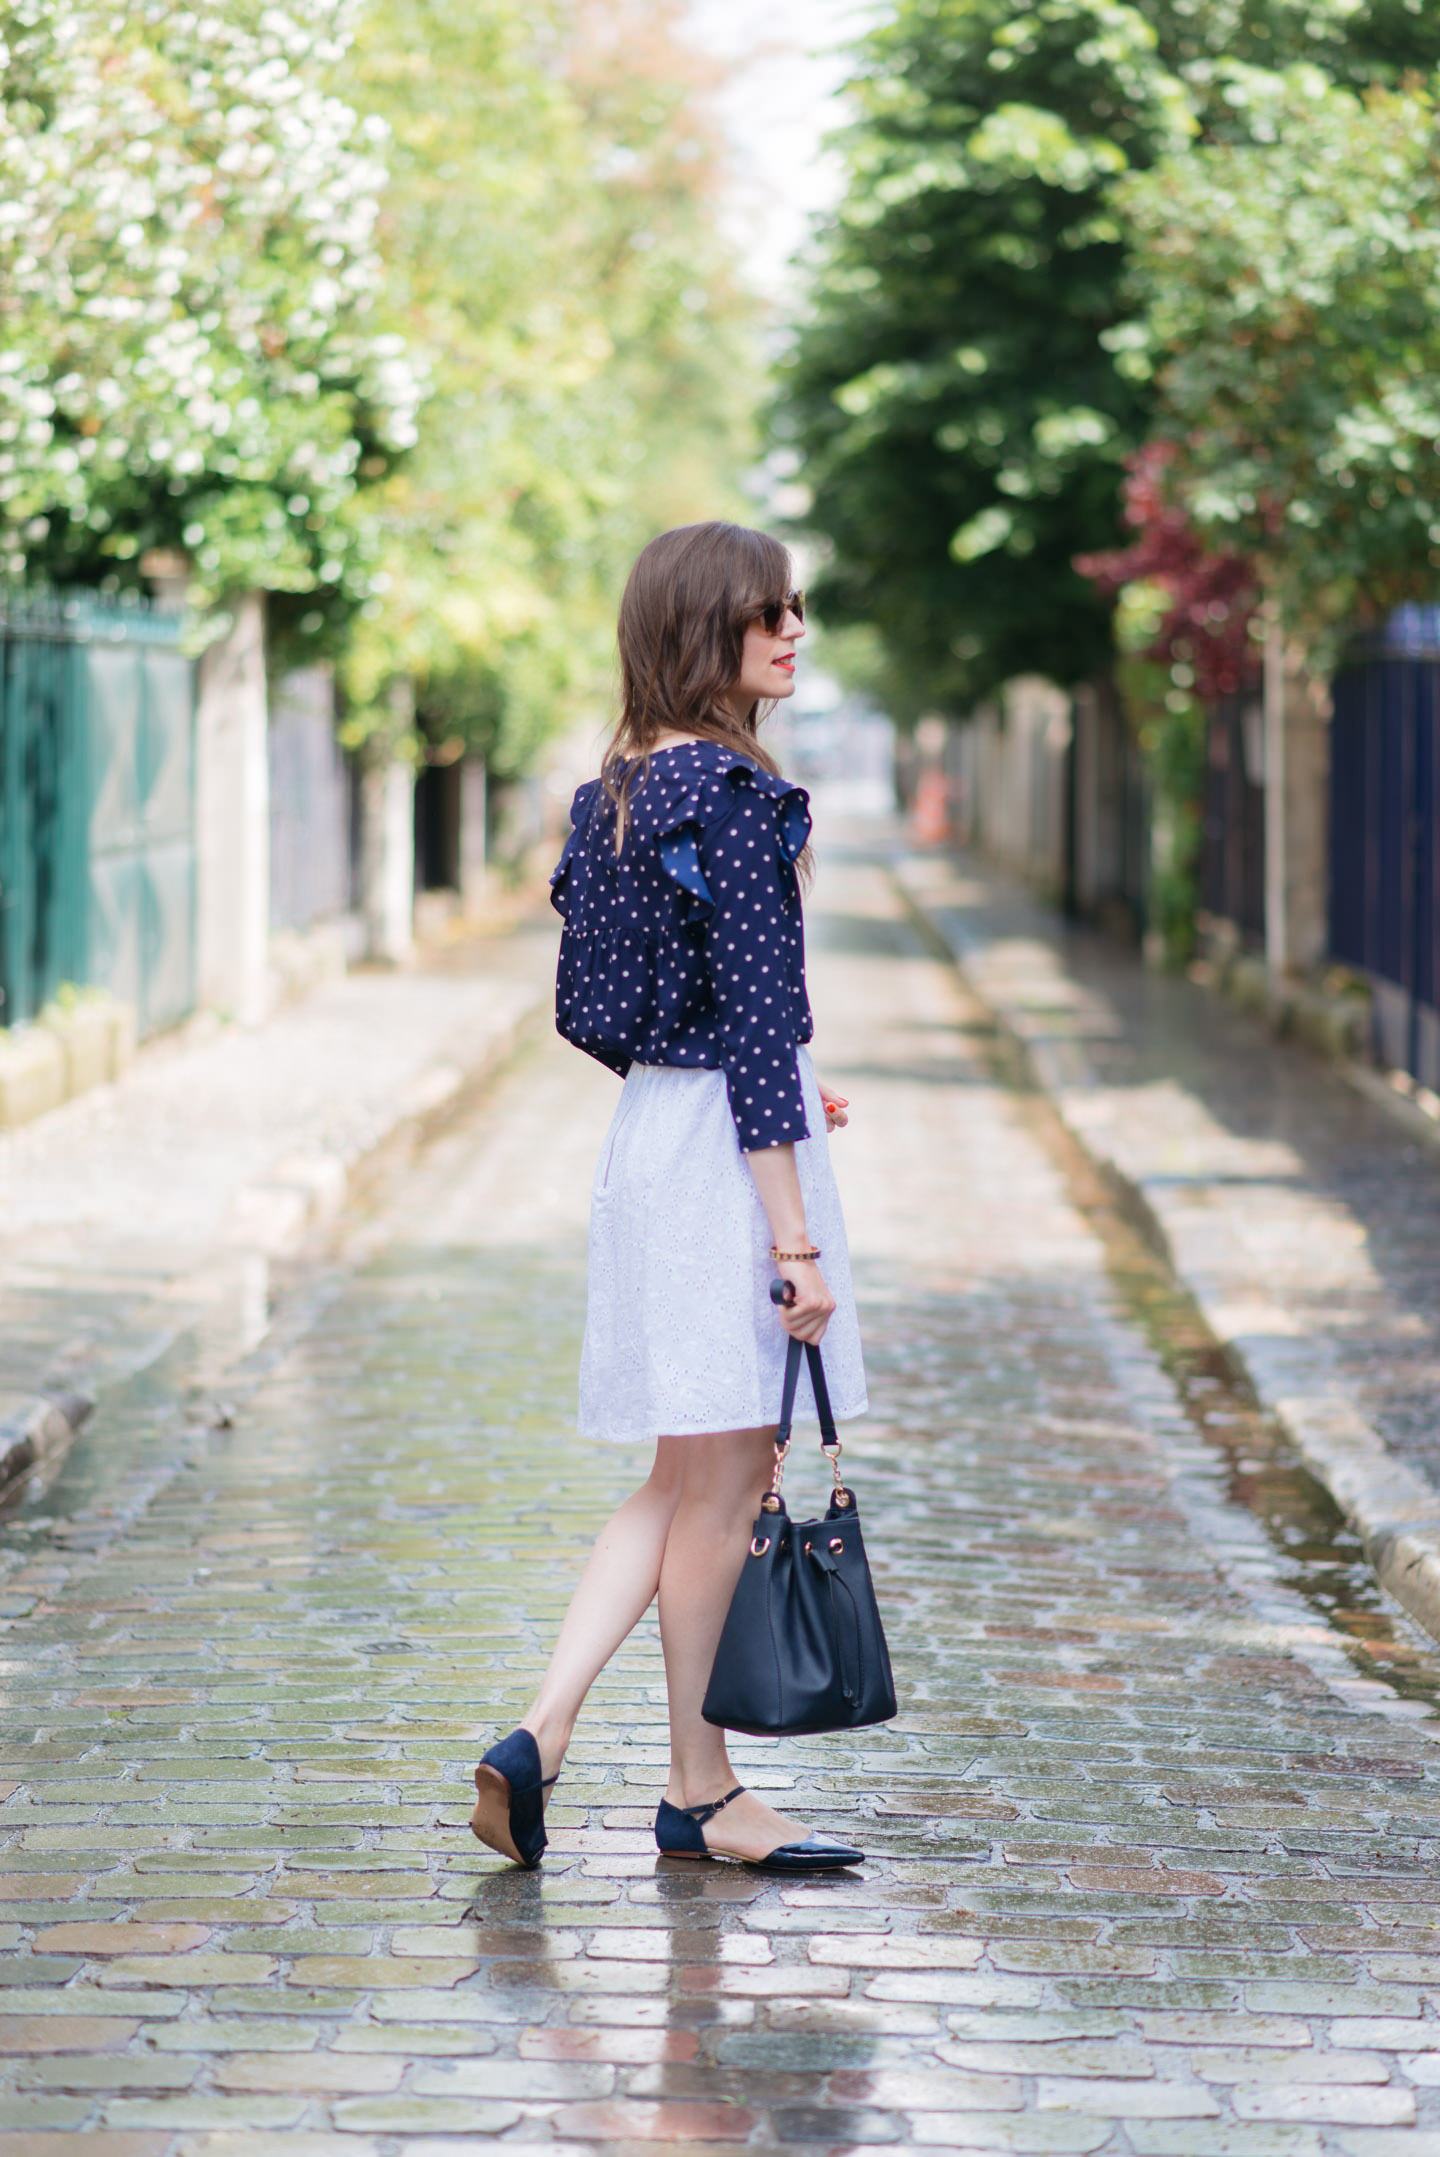 Blog-Mode-And-the-City-Looks-Jean-Louis-David-3-Suisses-2